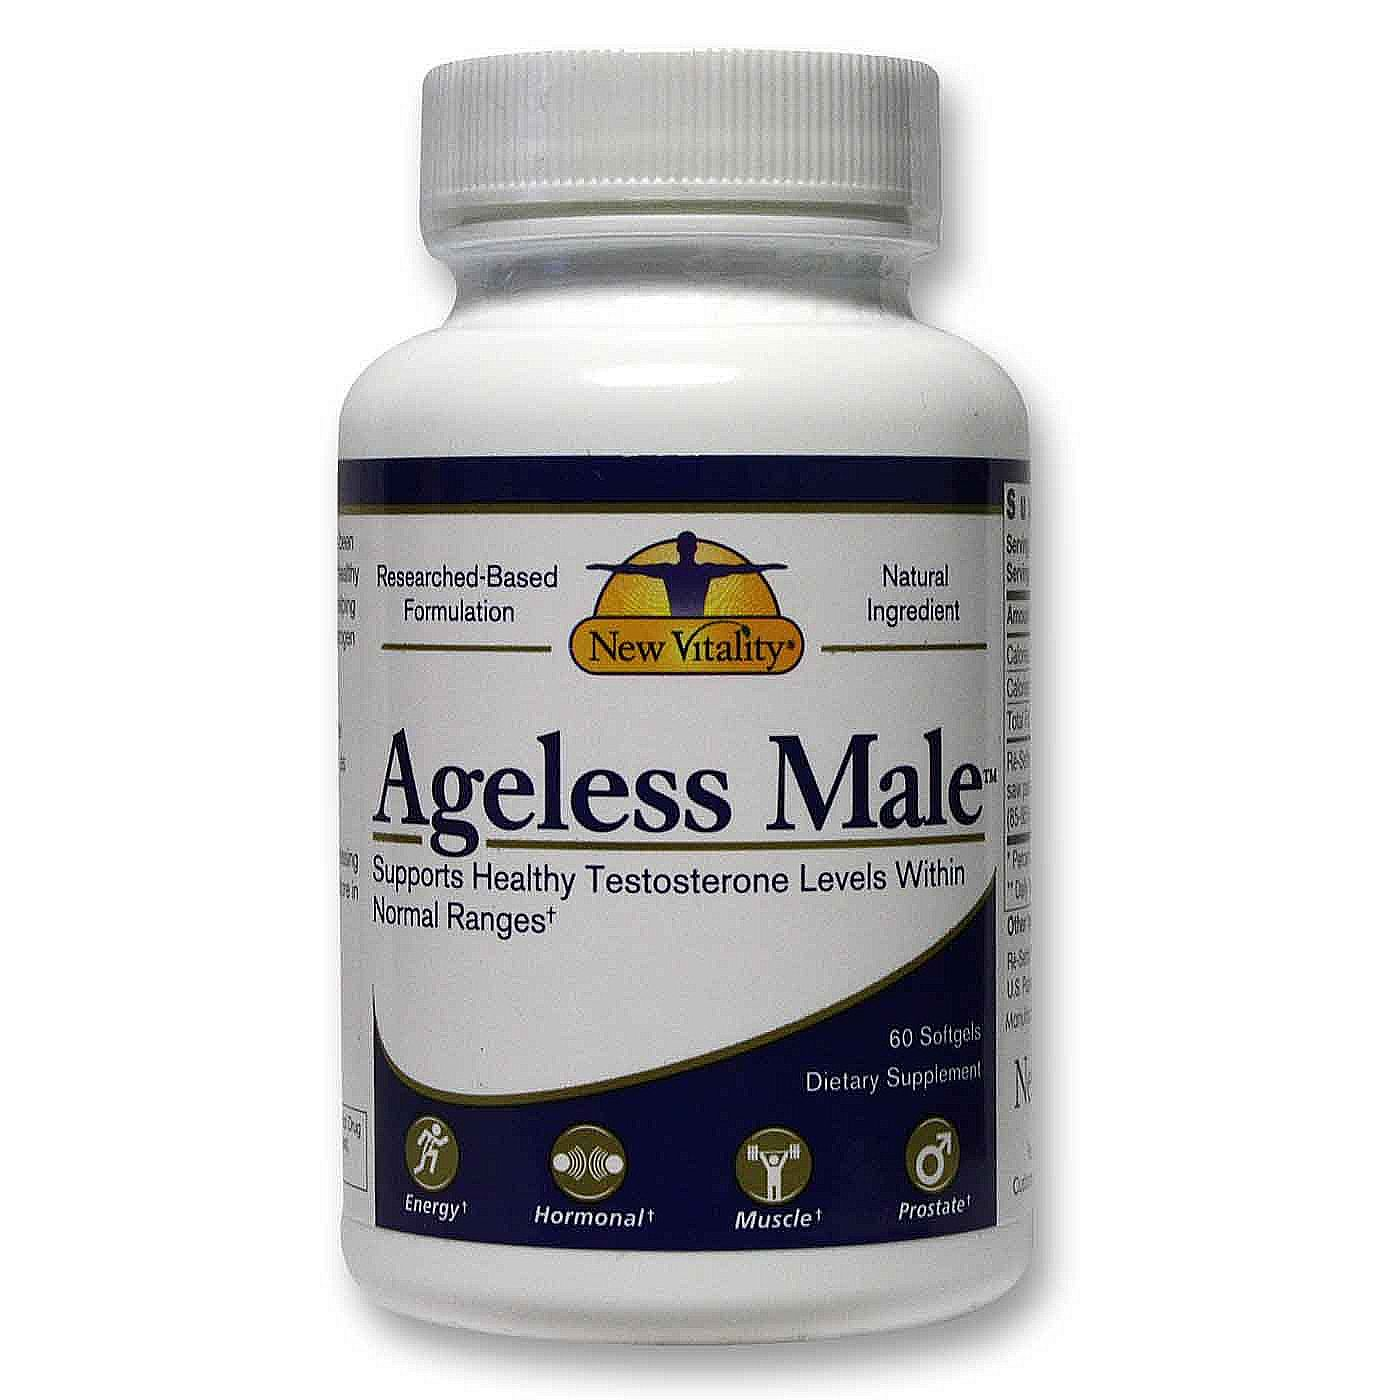 Ageless Male Max's clinically tested ingredients help boost TOTAL testosterone and increase Nitric oxide by as much as 64%† to support healthy blood flow throughout your entire body (healthy NO levels are important for sexual arousal).*.